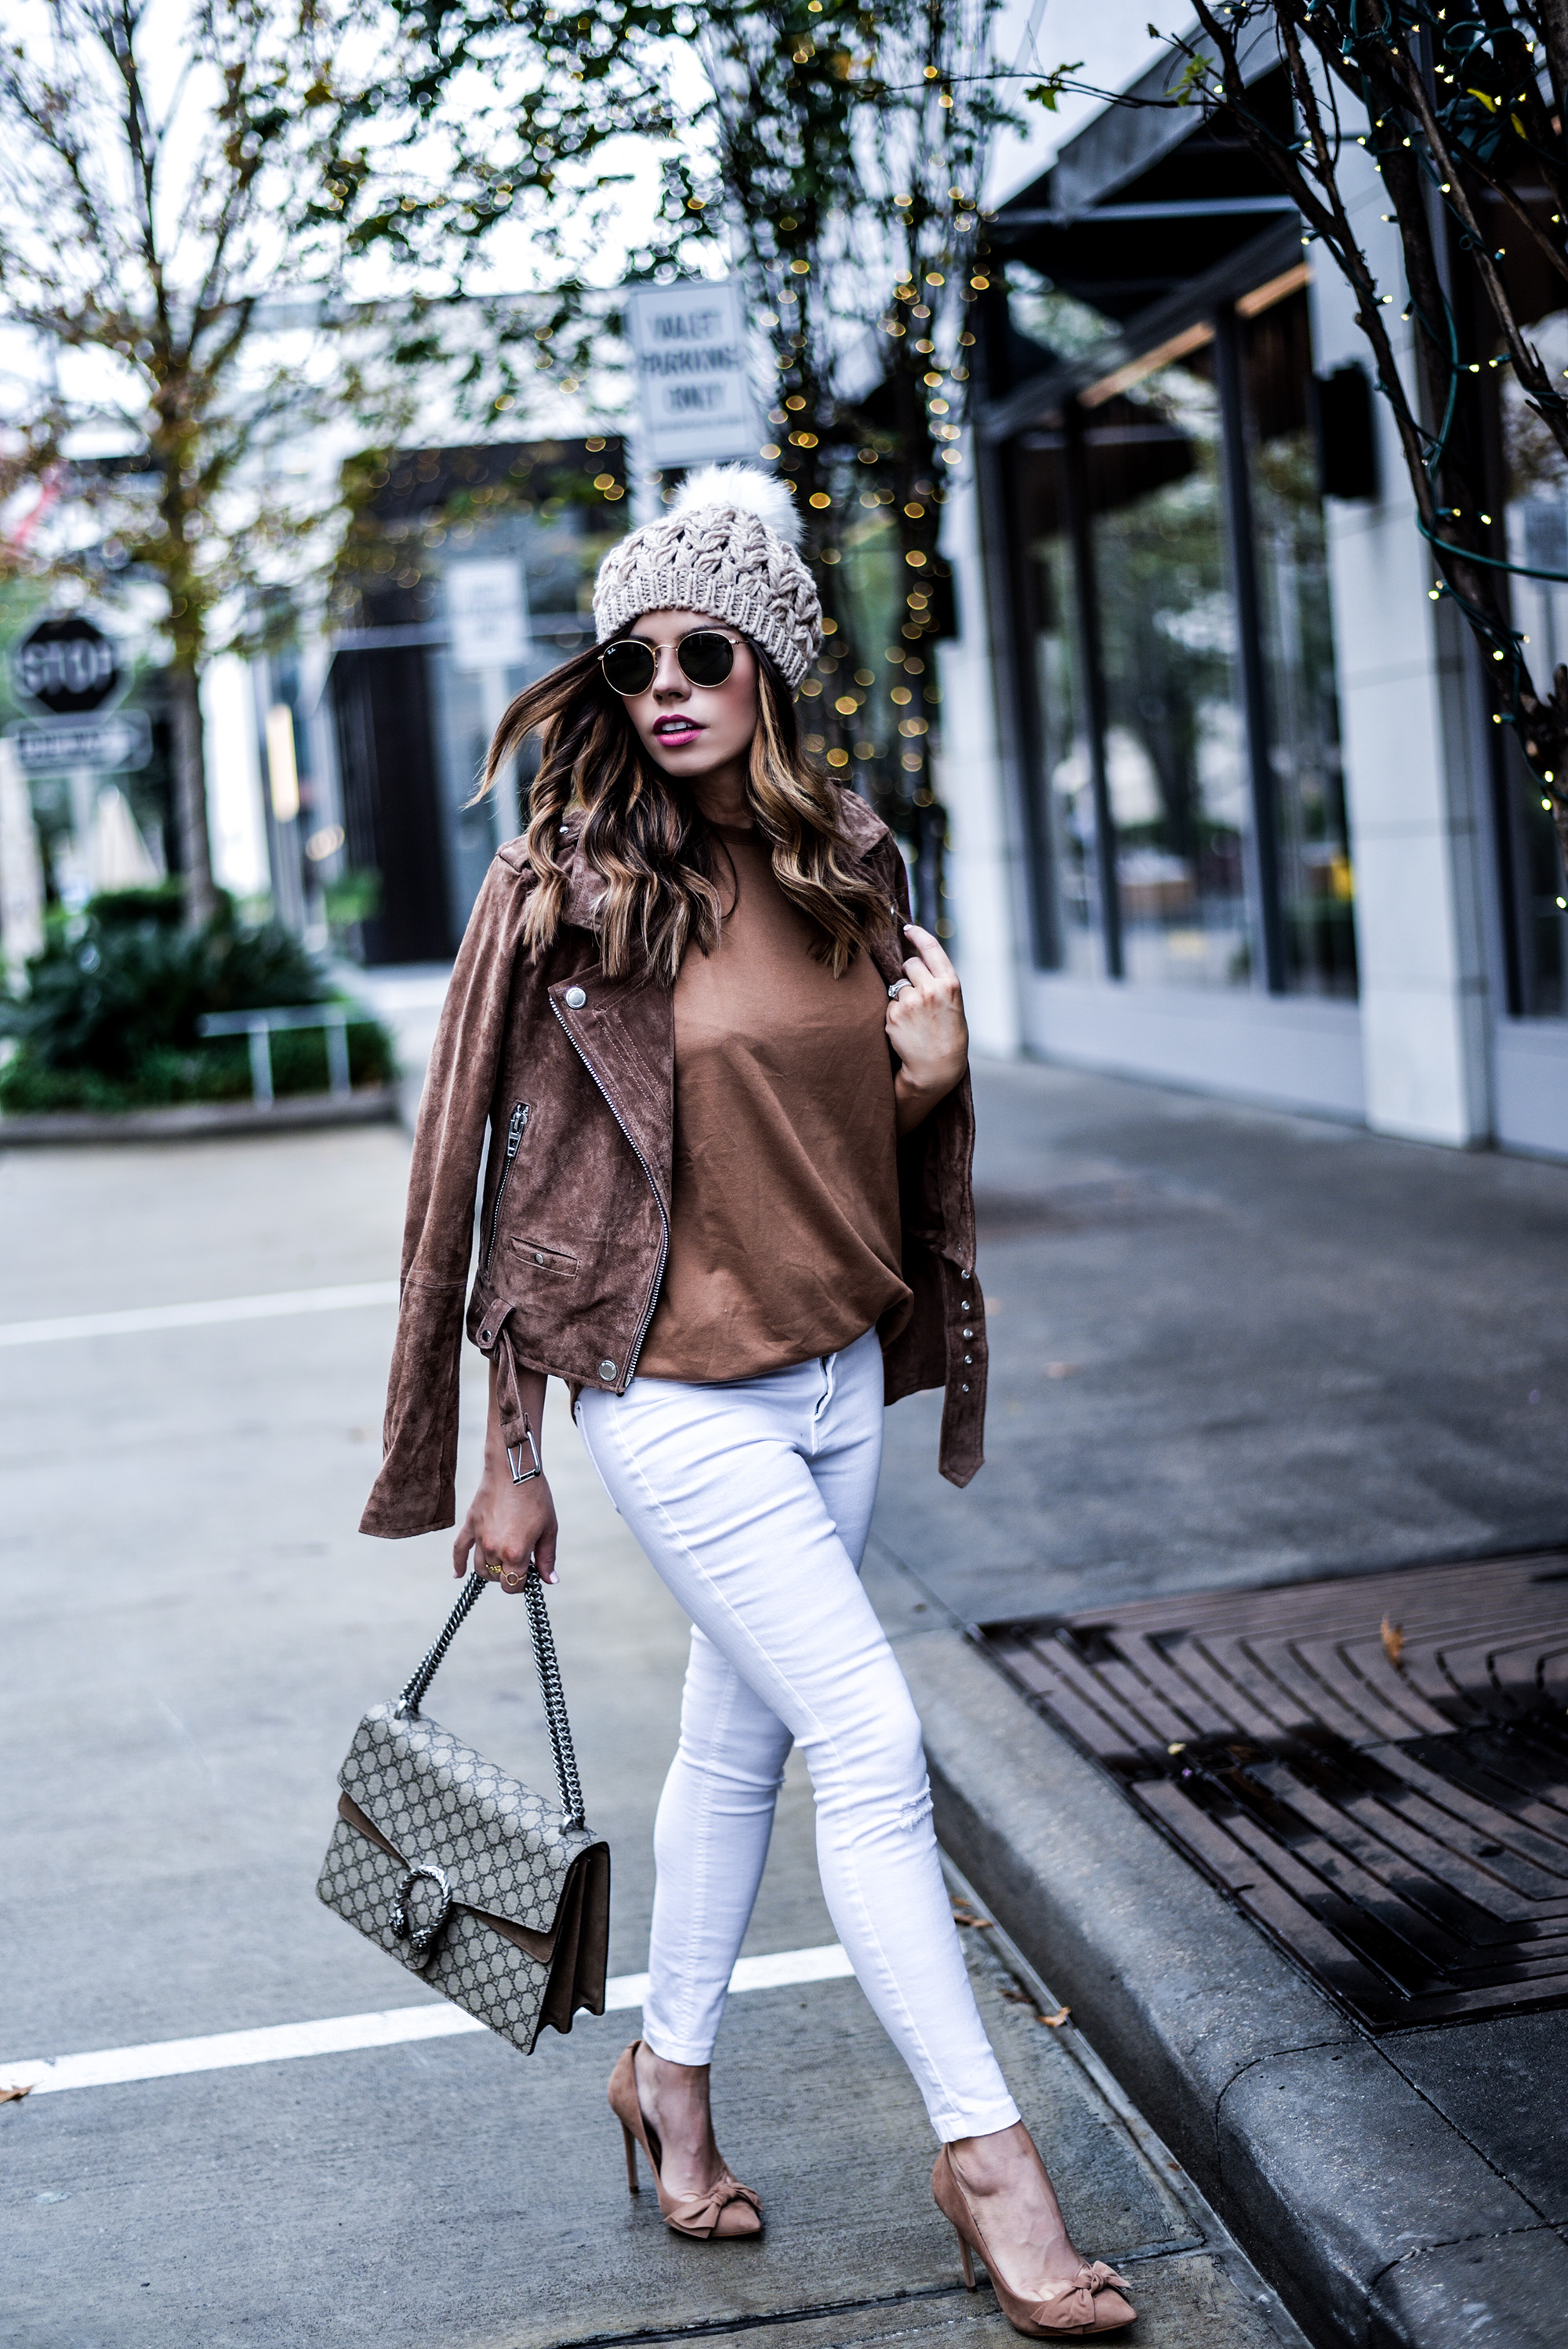 Tiffany Jais the Houston Style blogger of Flaunt and Center wearing caramel hues, a Blank NYC suede moto jacket with an ASOS top, steve madden token heels, white skinny jeans, and a Gucci Dionysus bag | what's trending in women's fashion